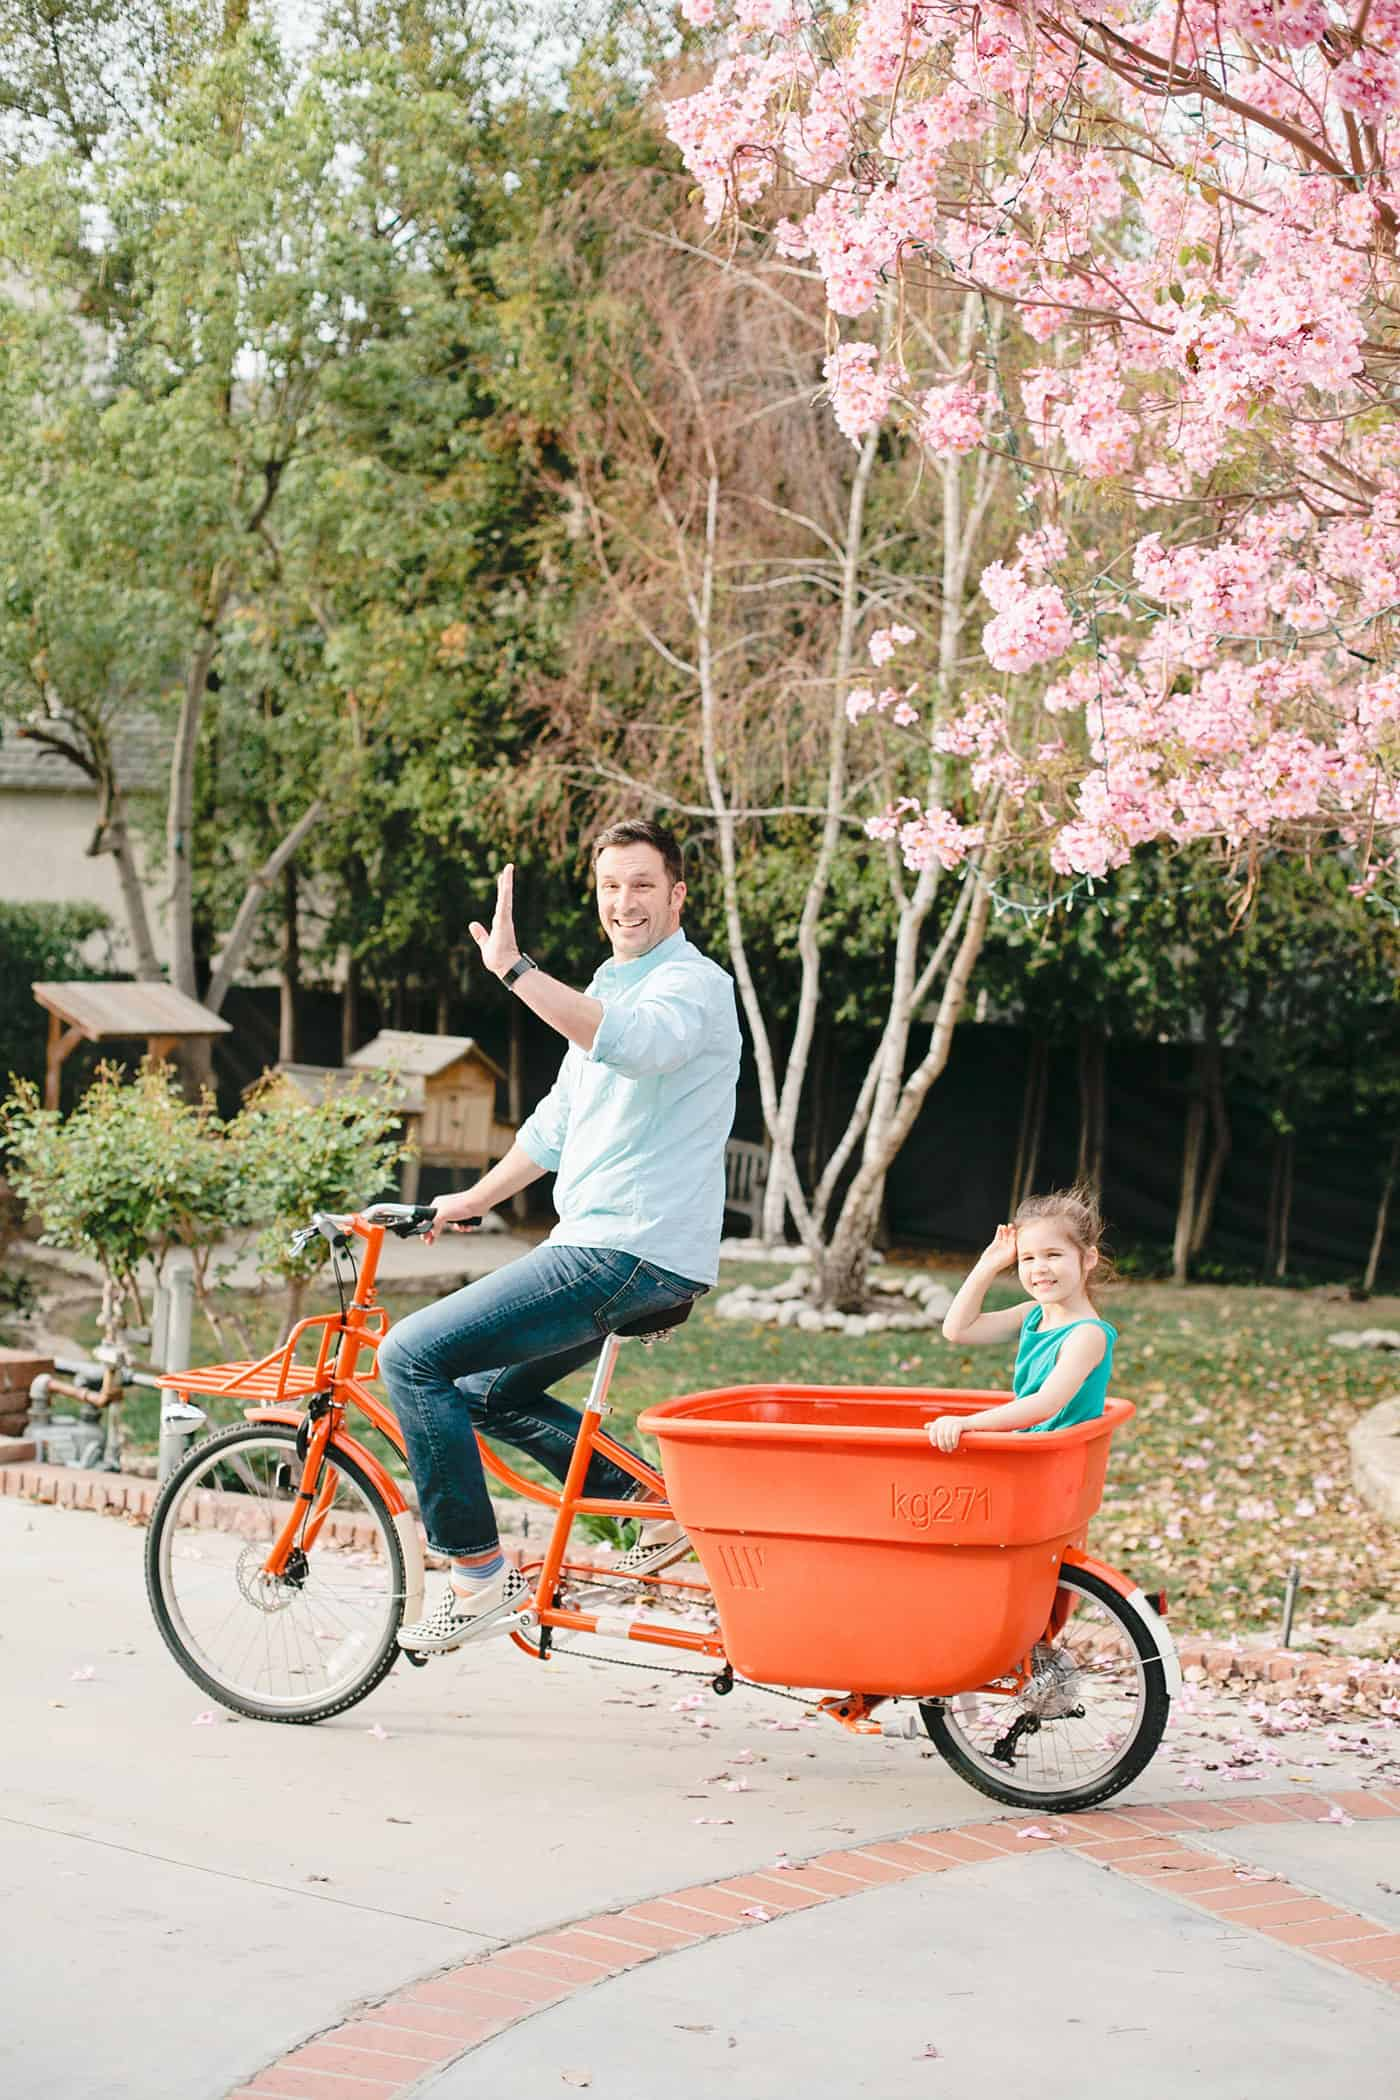 Tiffani Thiessen Spring Giveaway with Madsen Cycles & House of Mia • Photo by Megan Welker